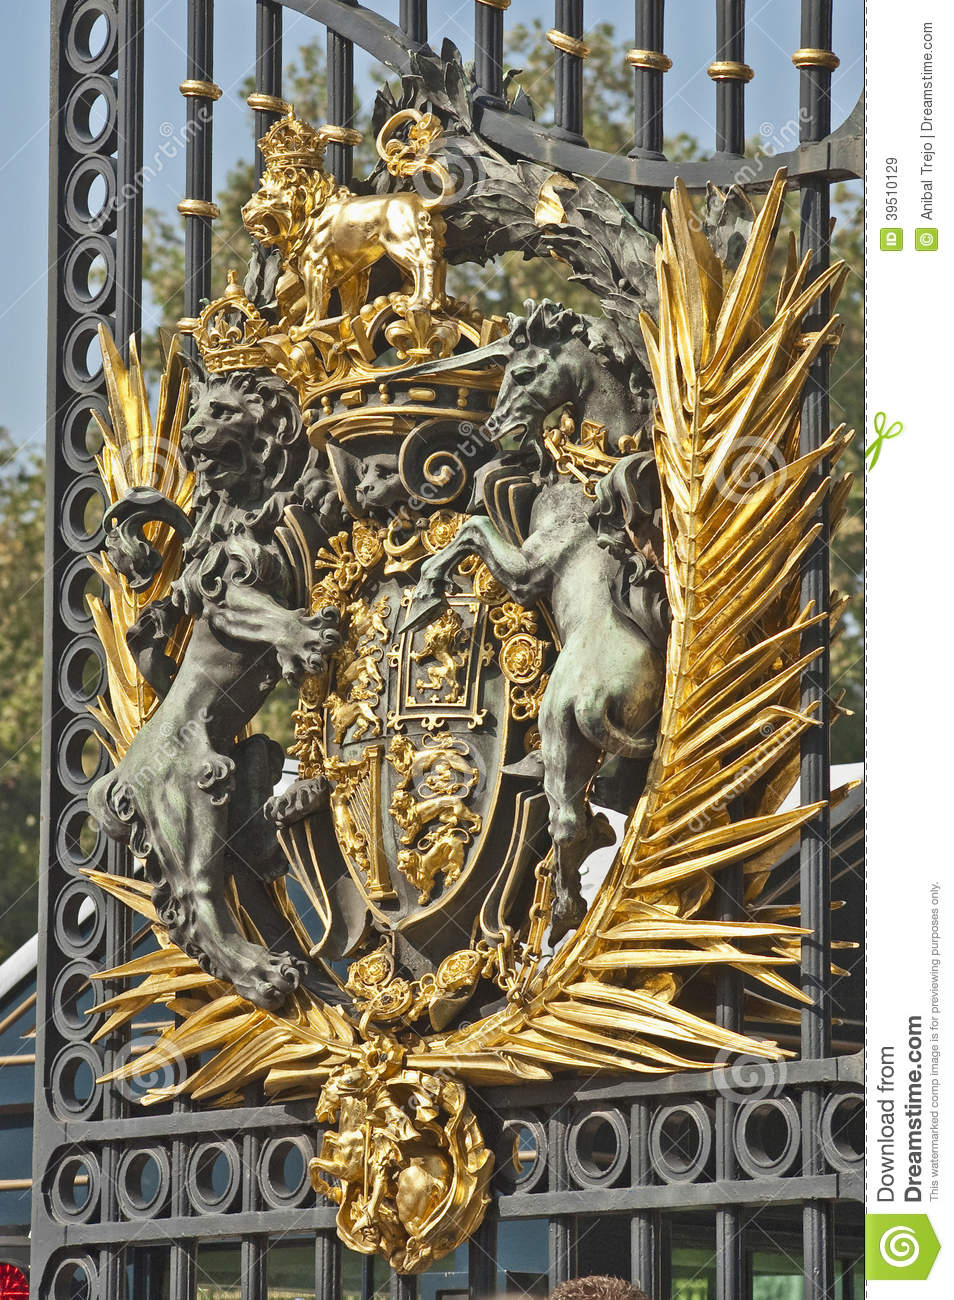 Door of the Buckingham Palace